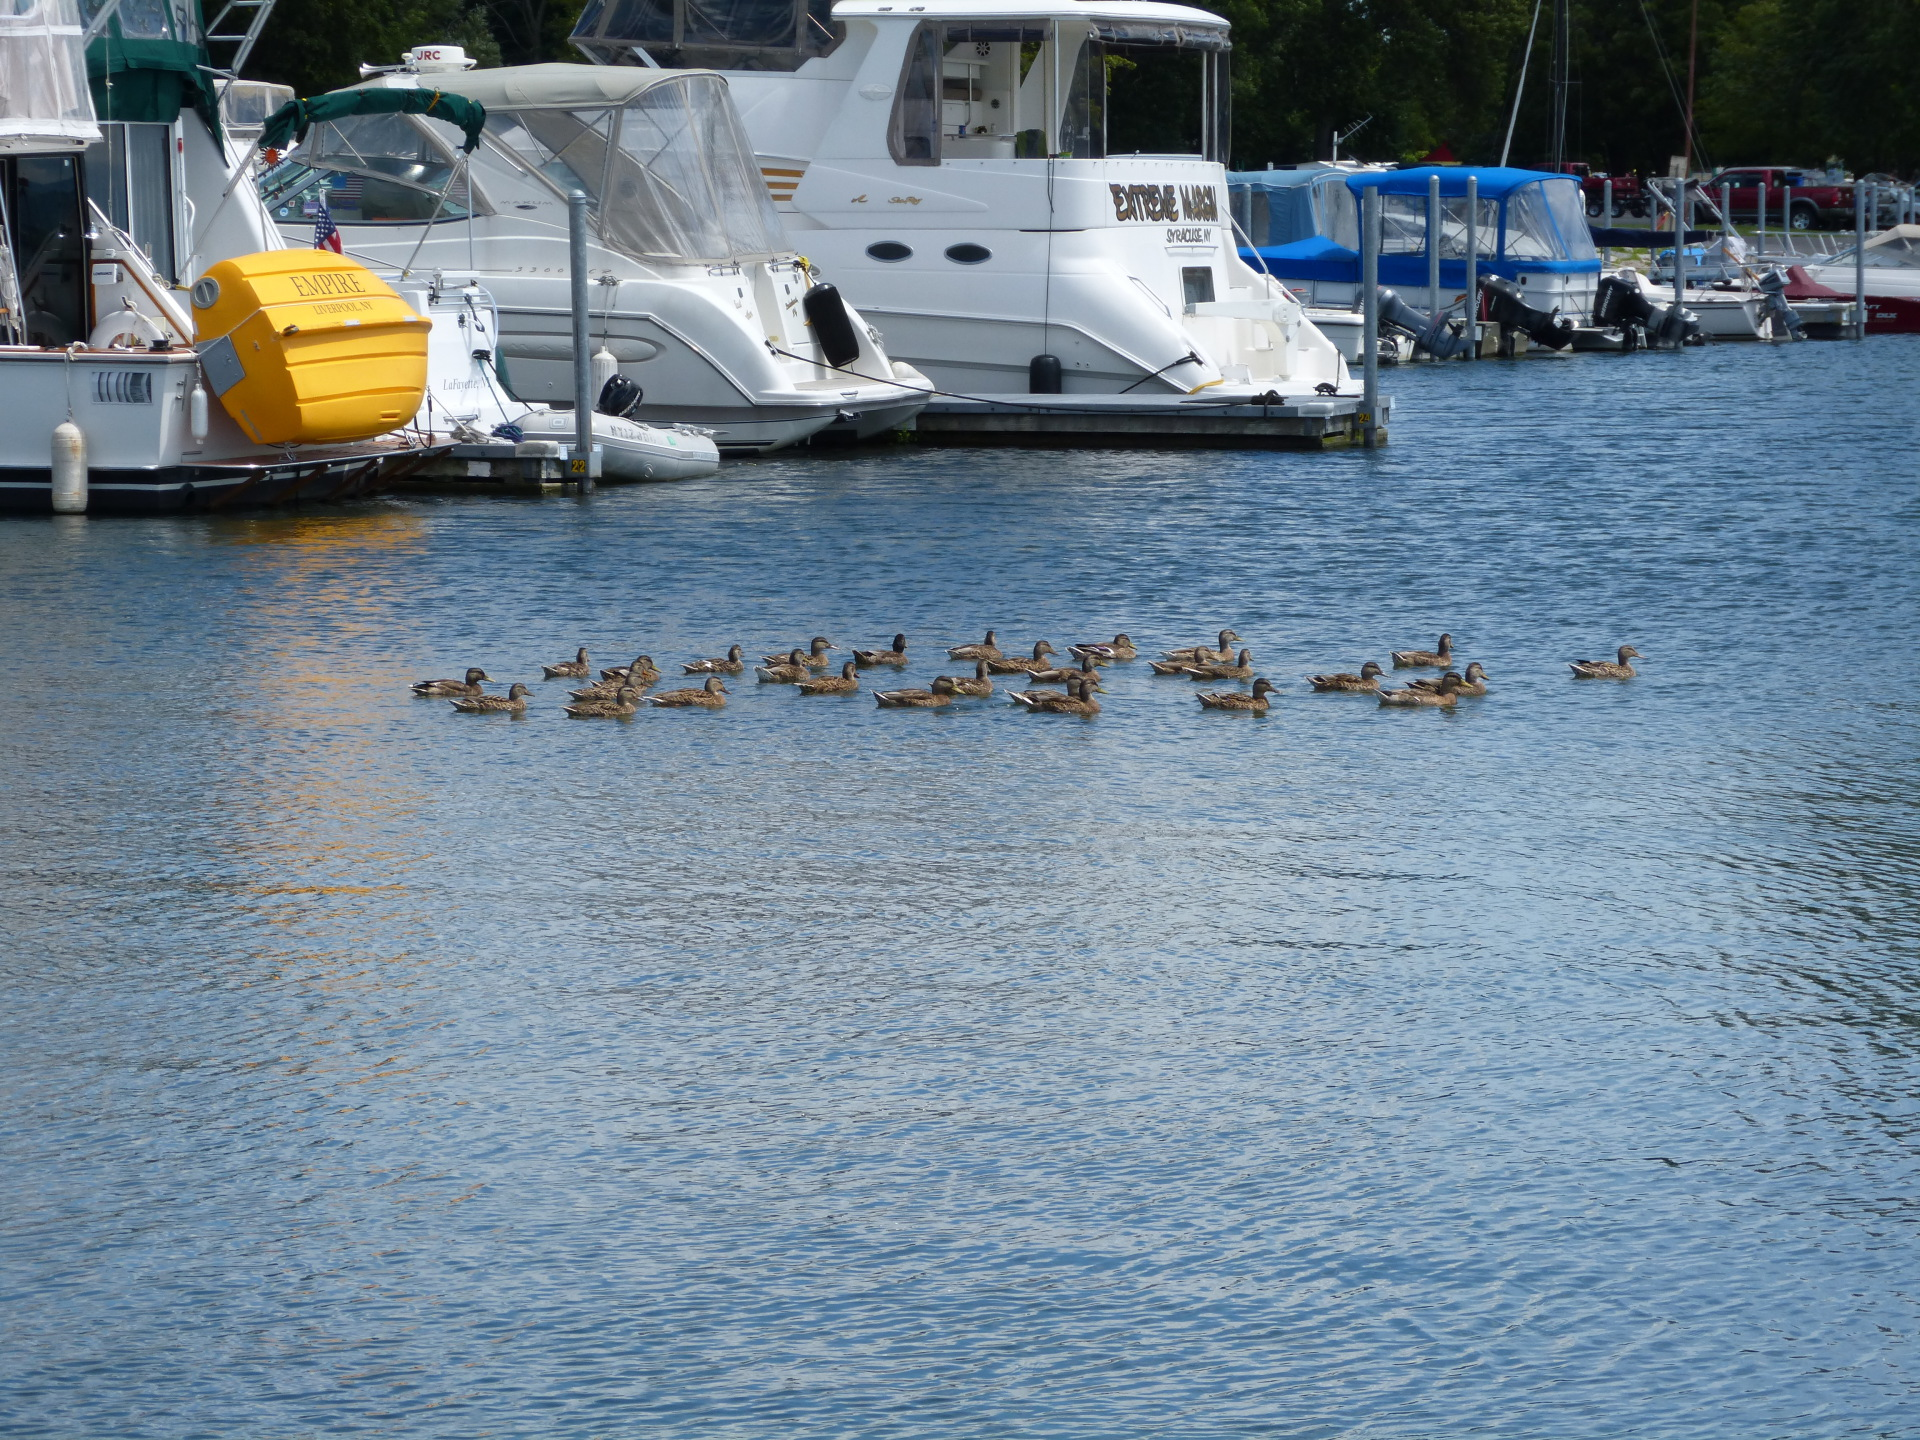 Ducks in the Marina